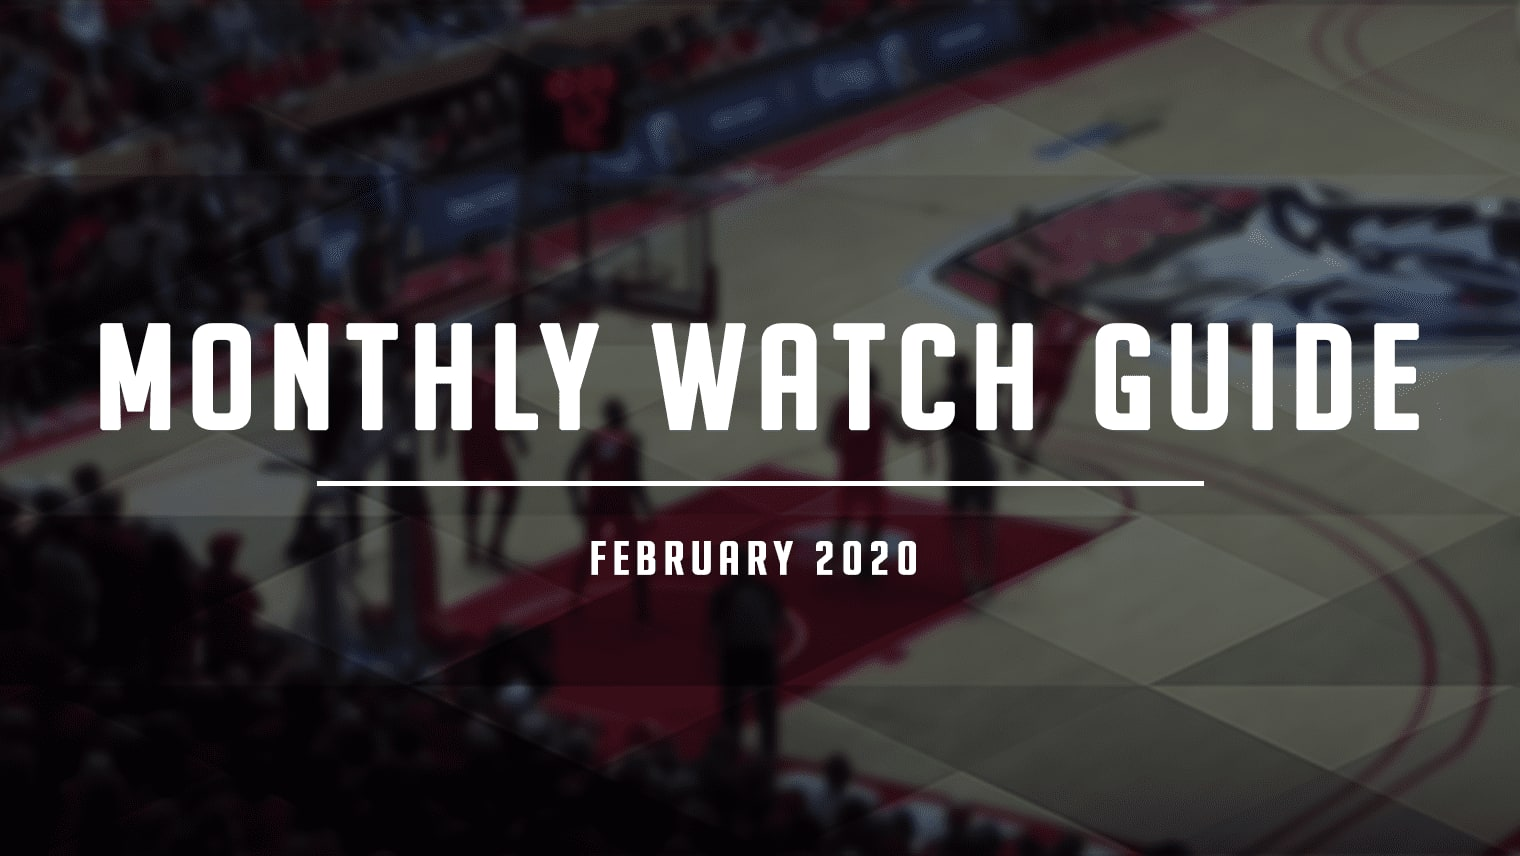 In February, the college basketball regular season is coming into its final stretch, All-Star Weekend happens, and there's international ball to boot.